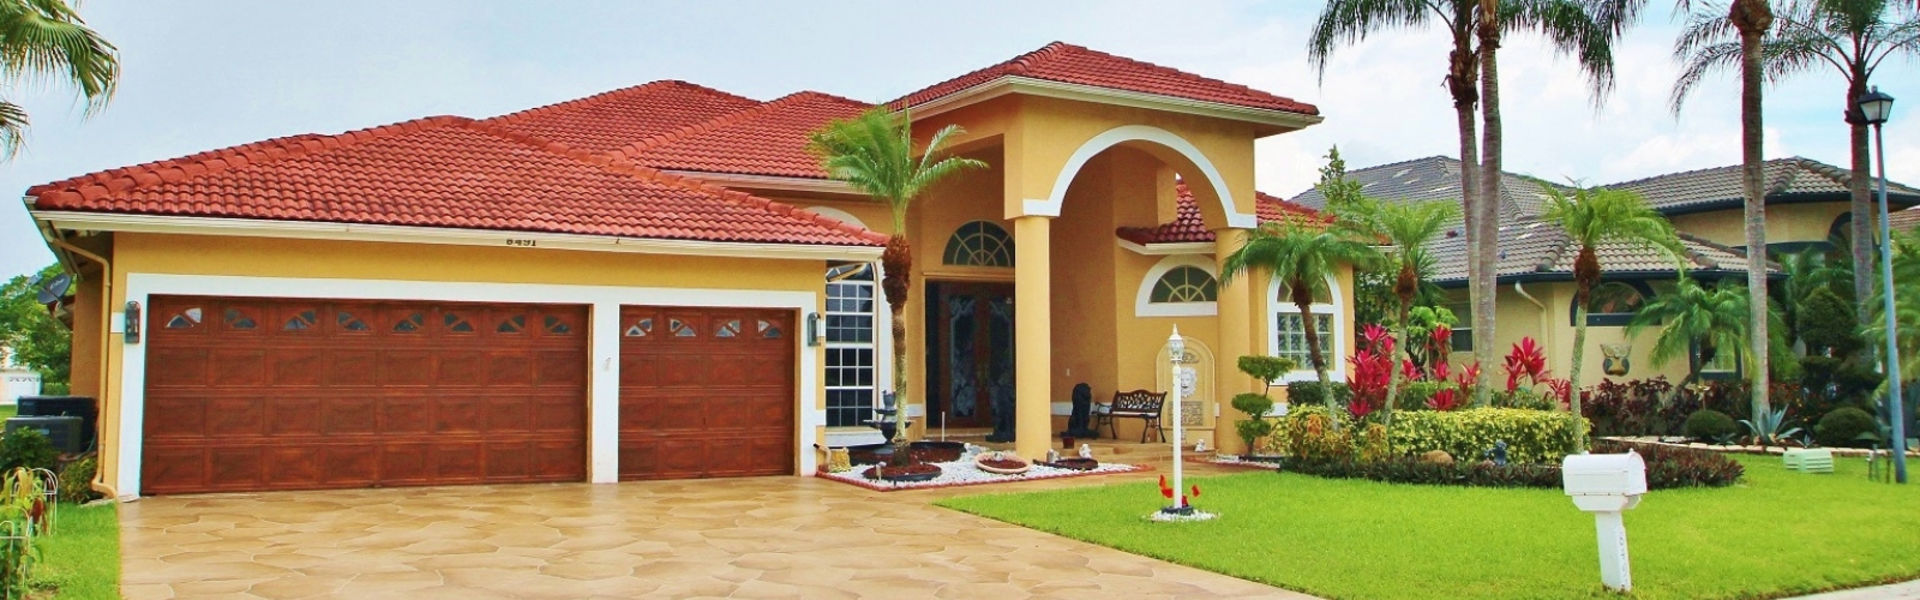 4 BEDROOMS / 2.5 BATHROOMS, LAKEFRONT CORAL SPRINGS HOME FOR SALE